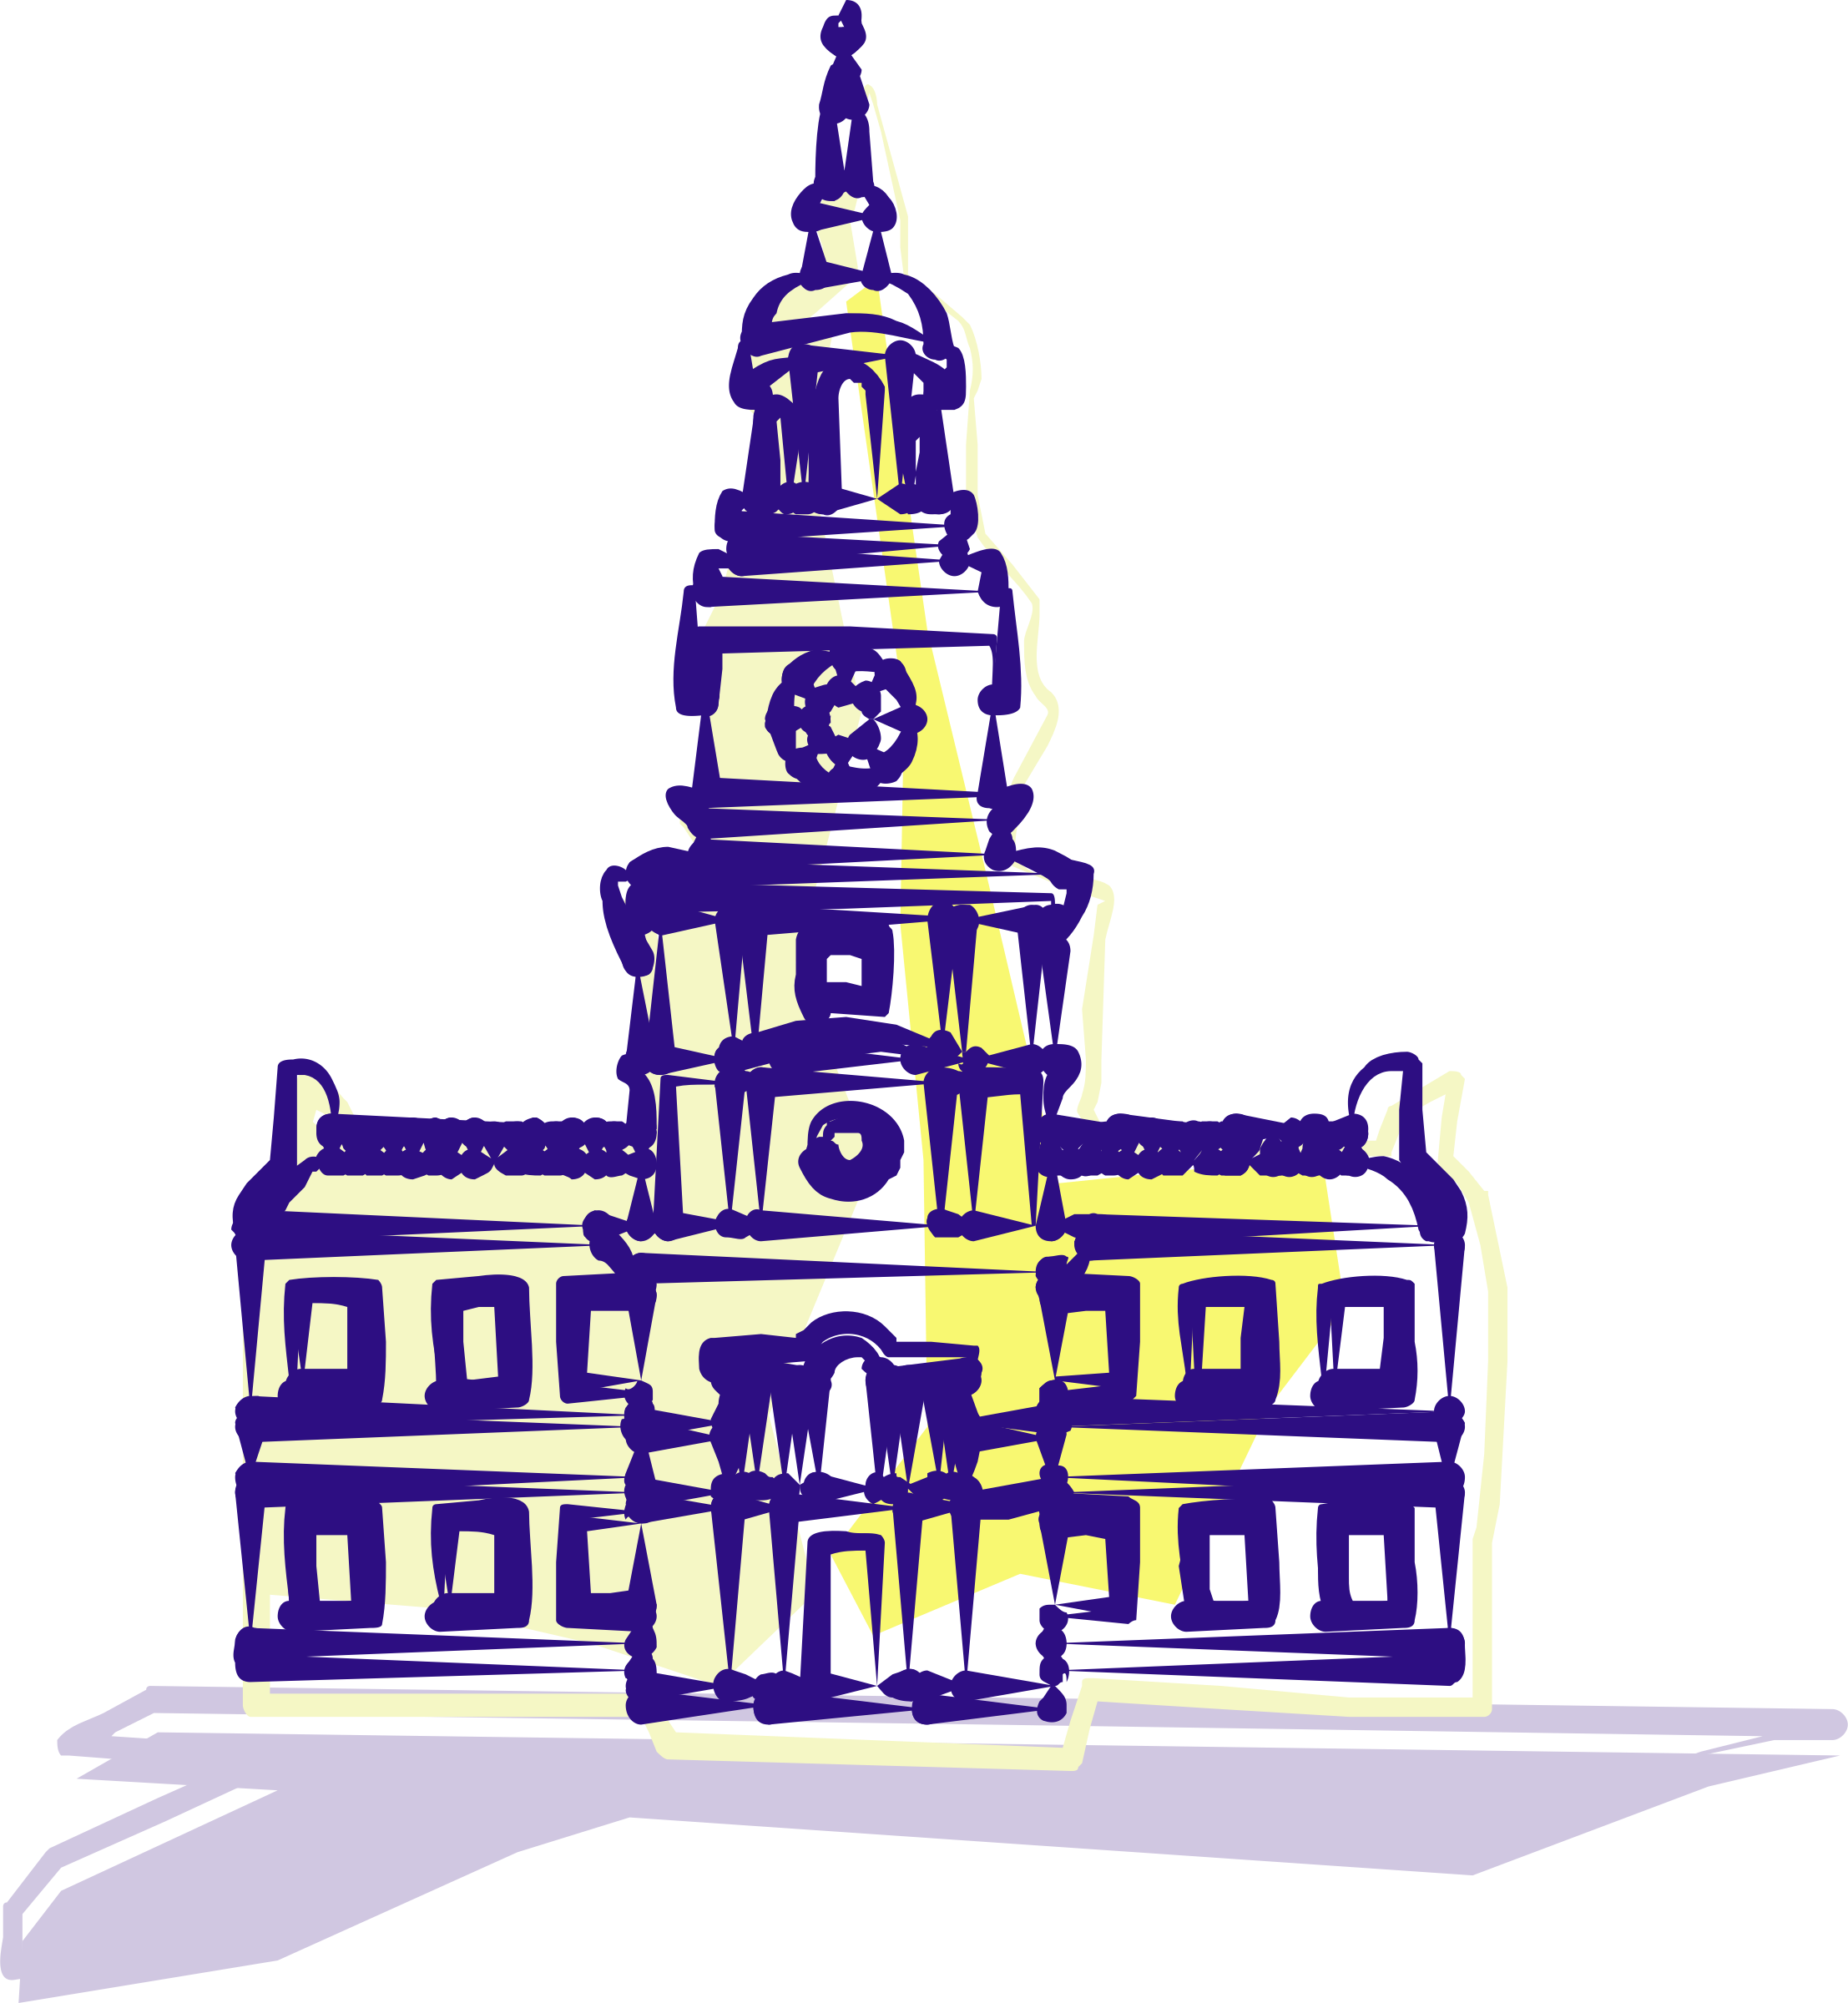 City clipart indonesia. Independence at getdrawings com